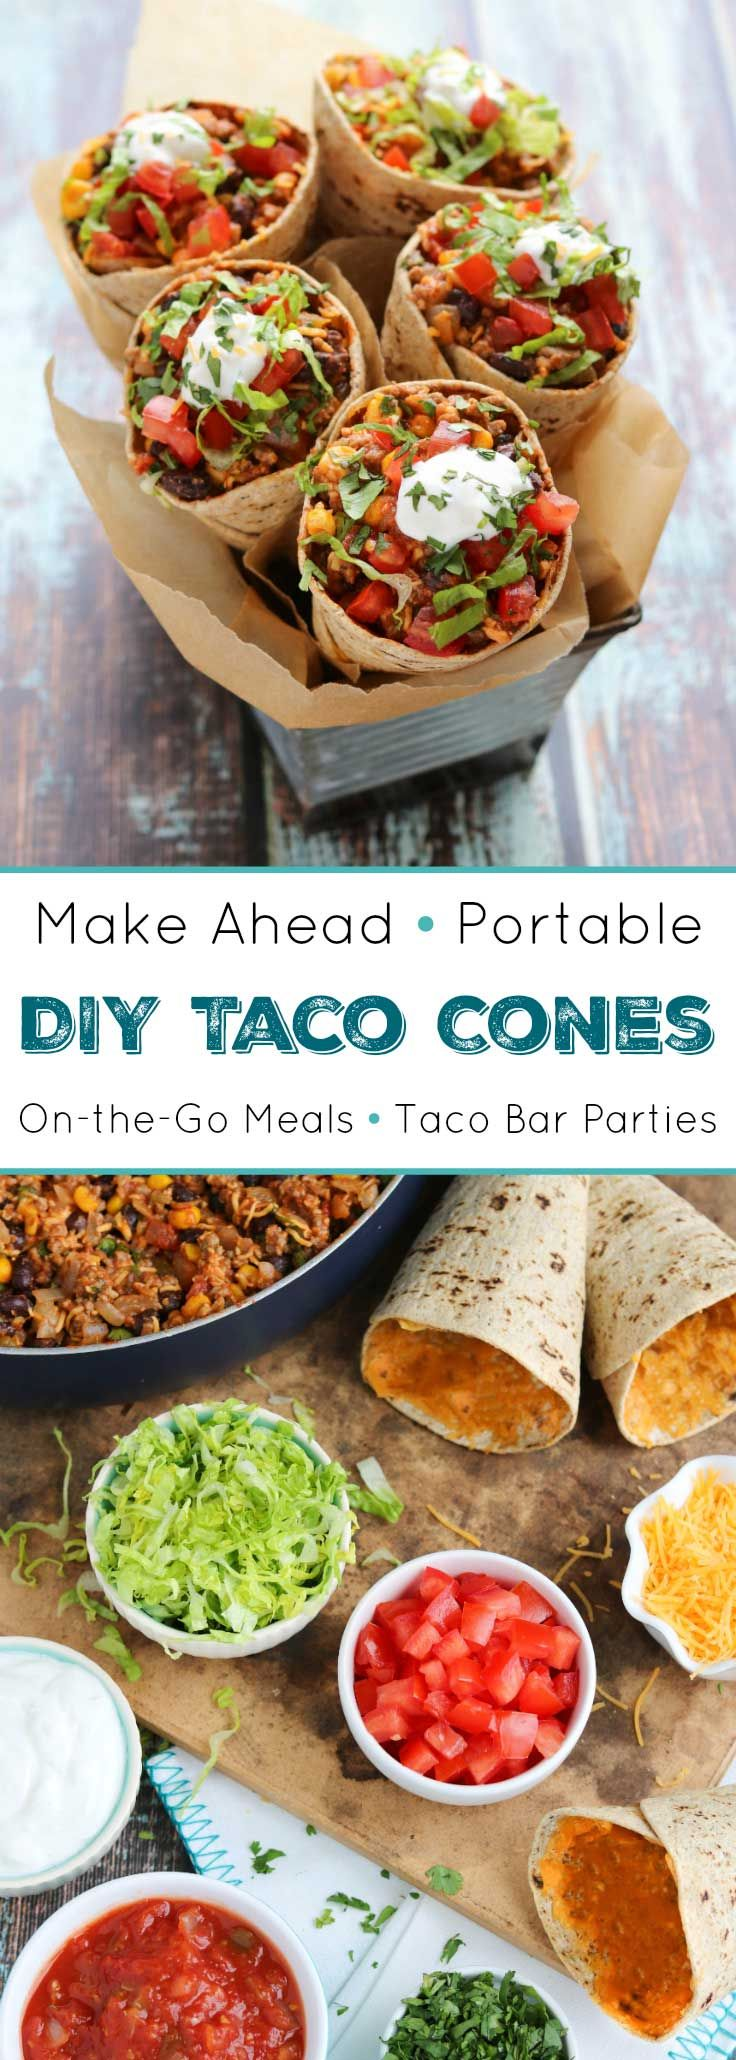 DIY Ta-Cones: Fun, Healthy & Portable Taco Cones